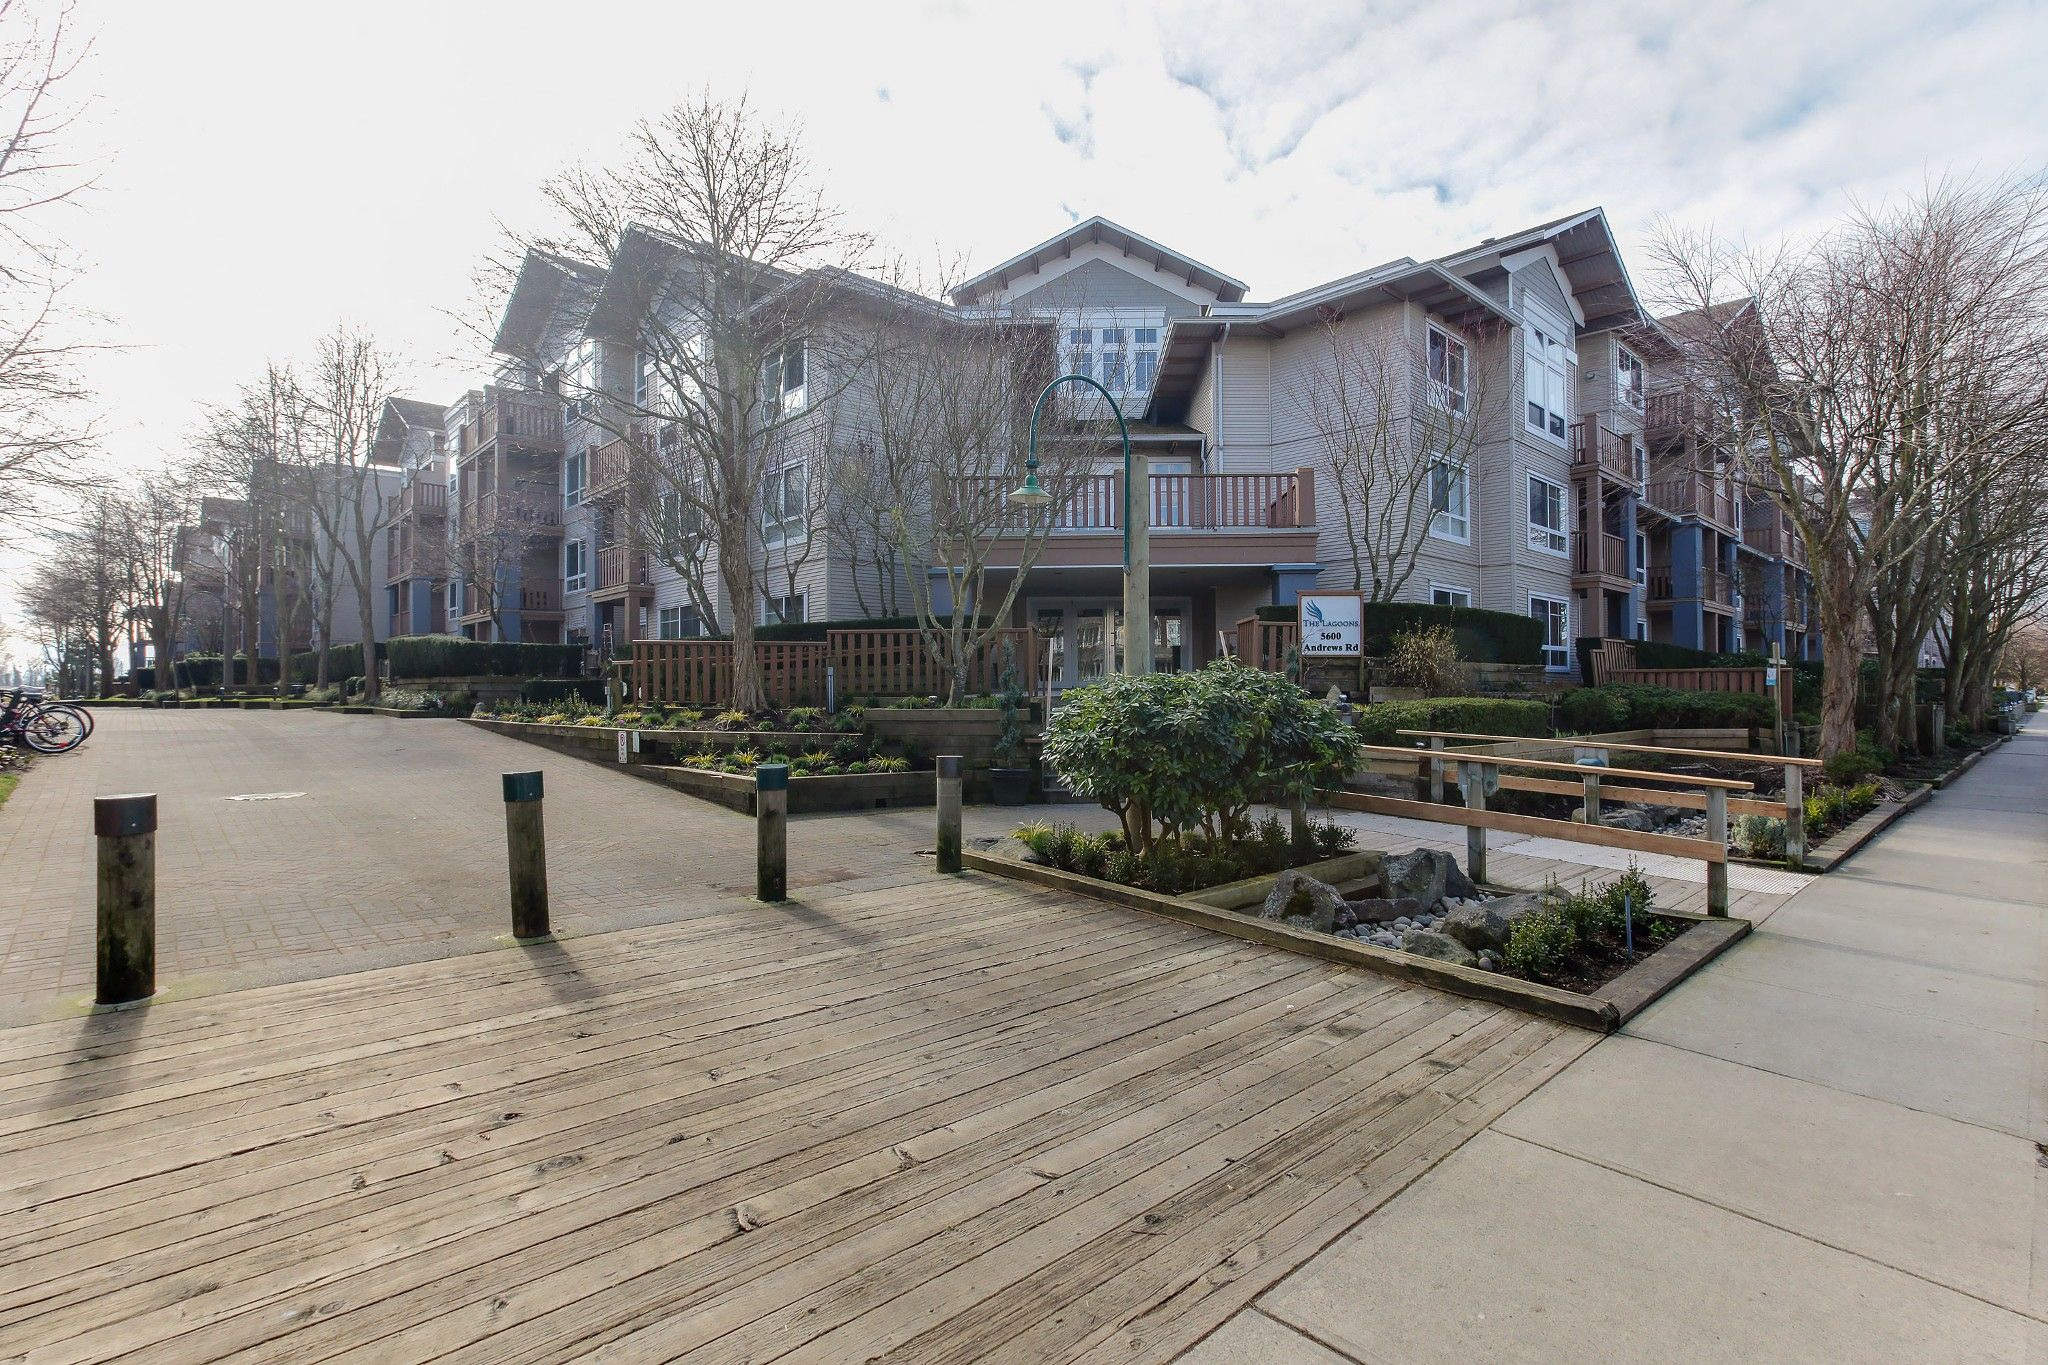 """Main Photo: 105 5600 ANDREWS Road in Richmond: Steveston South Condo for sale in """"THE LAGOONS"""" : MLS®# R2246426"""